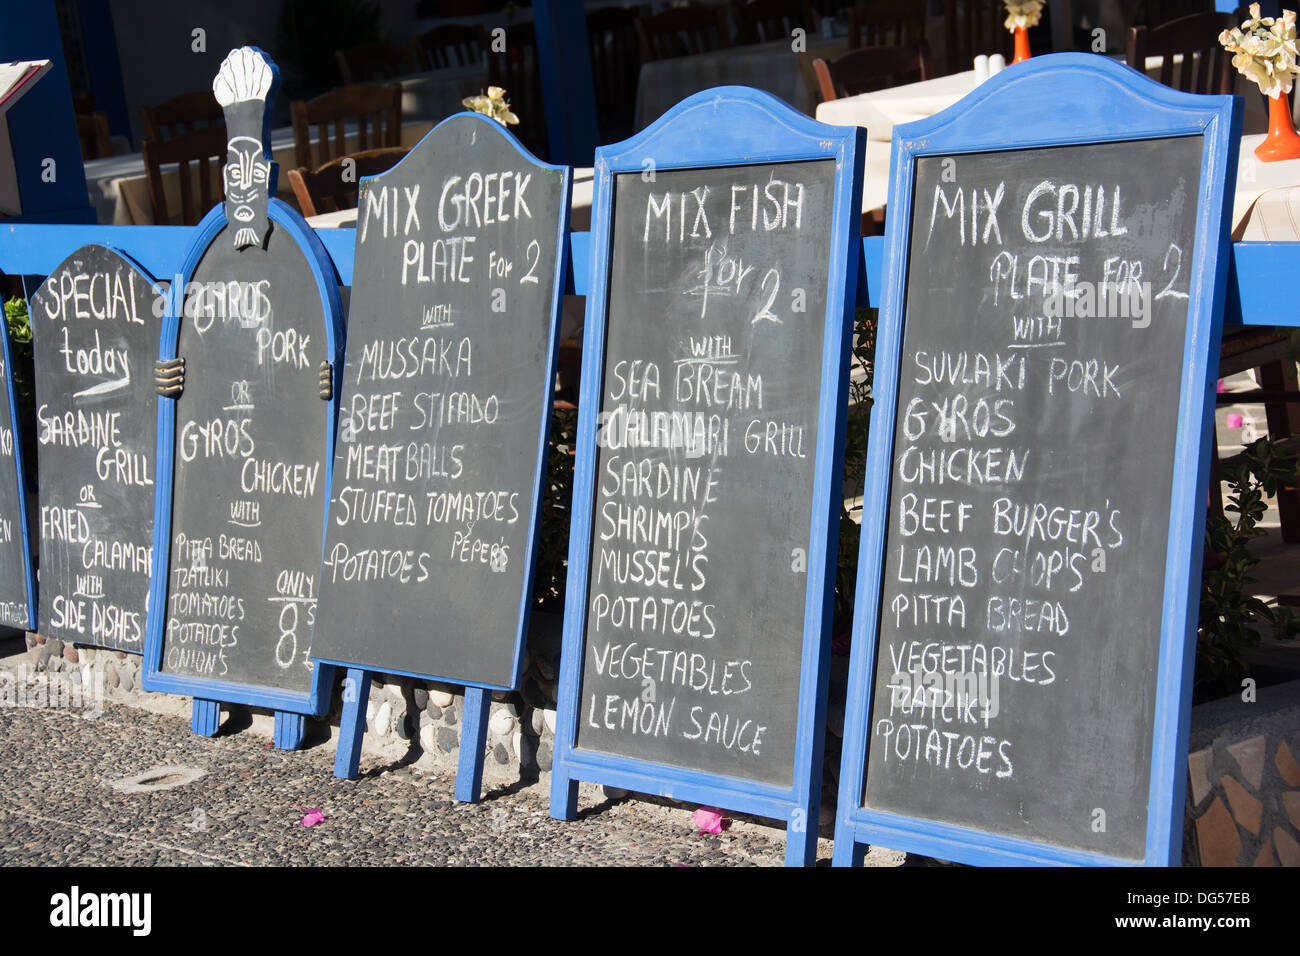 Restaurant Blackboard Menus Stock Photos & Restaurant Blackboard ...